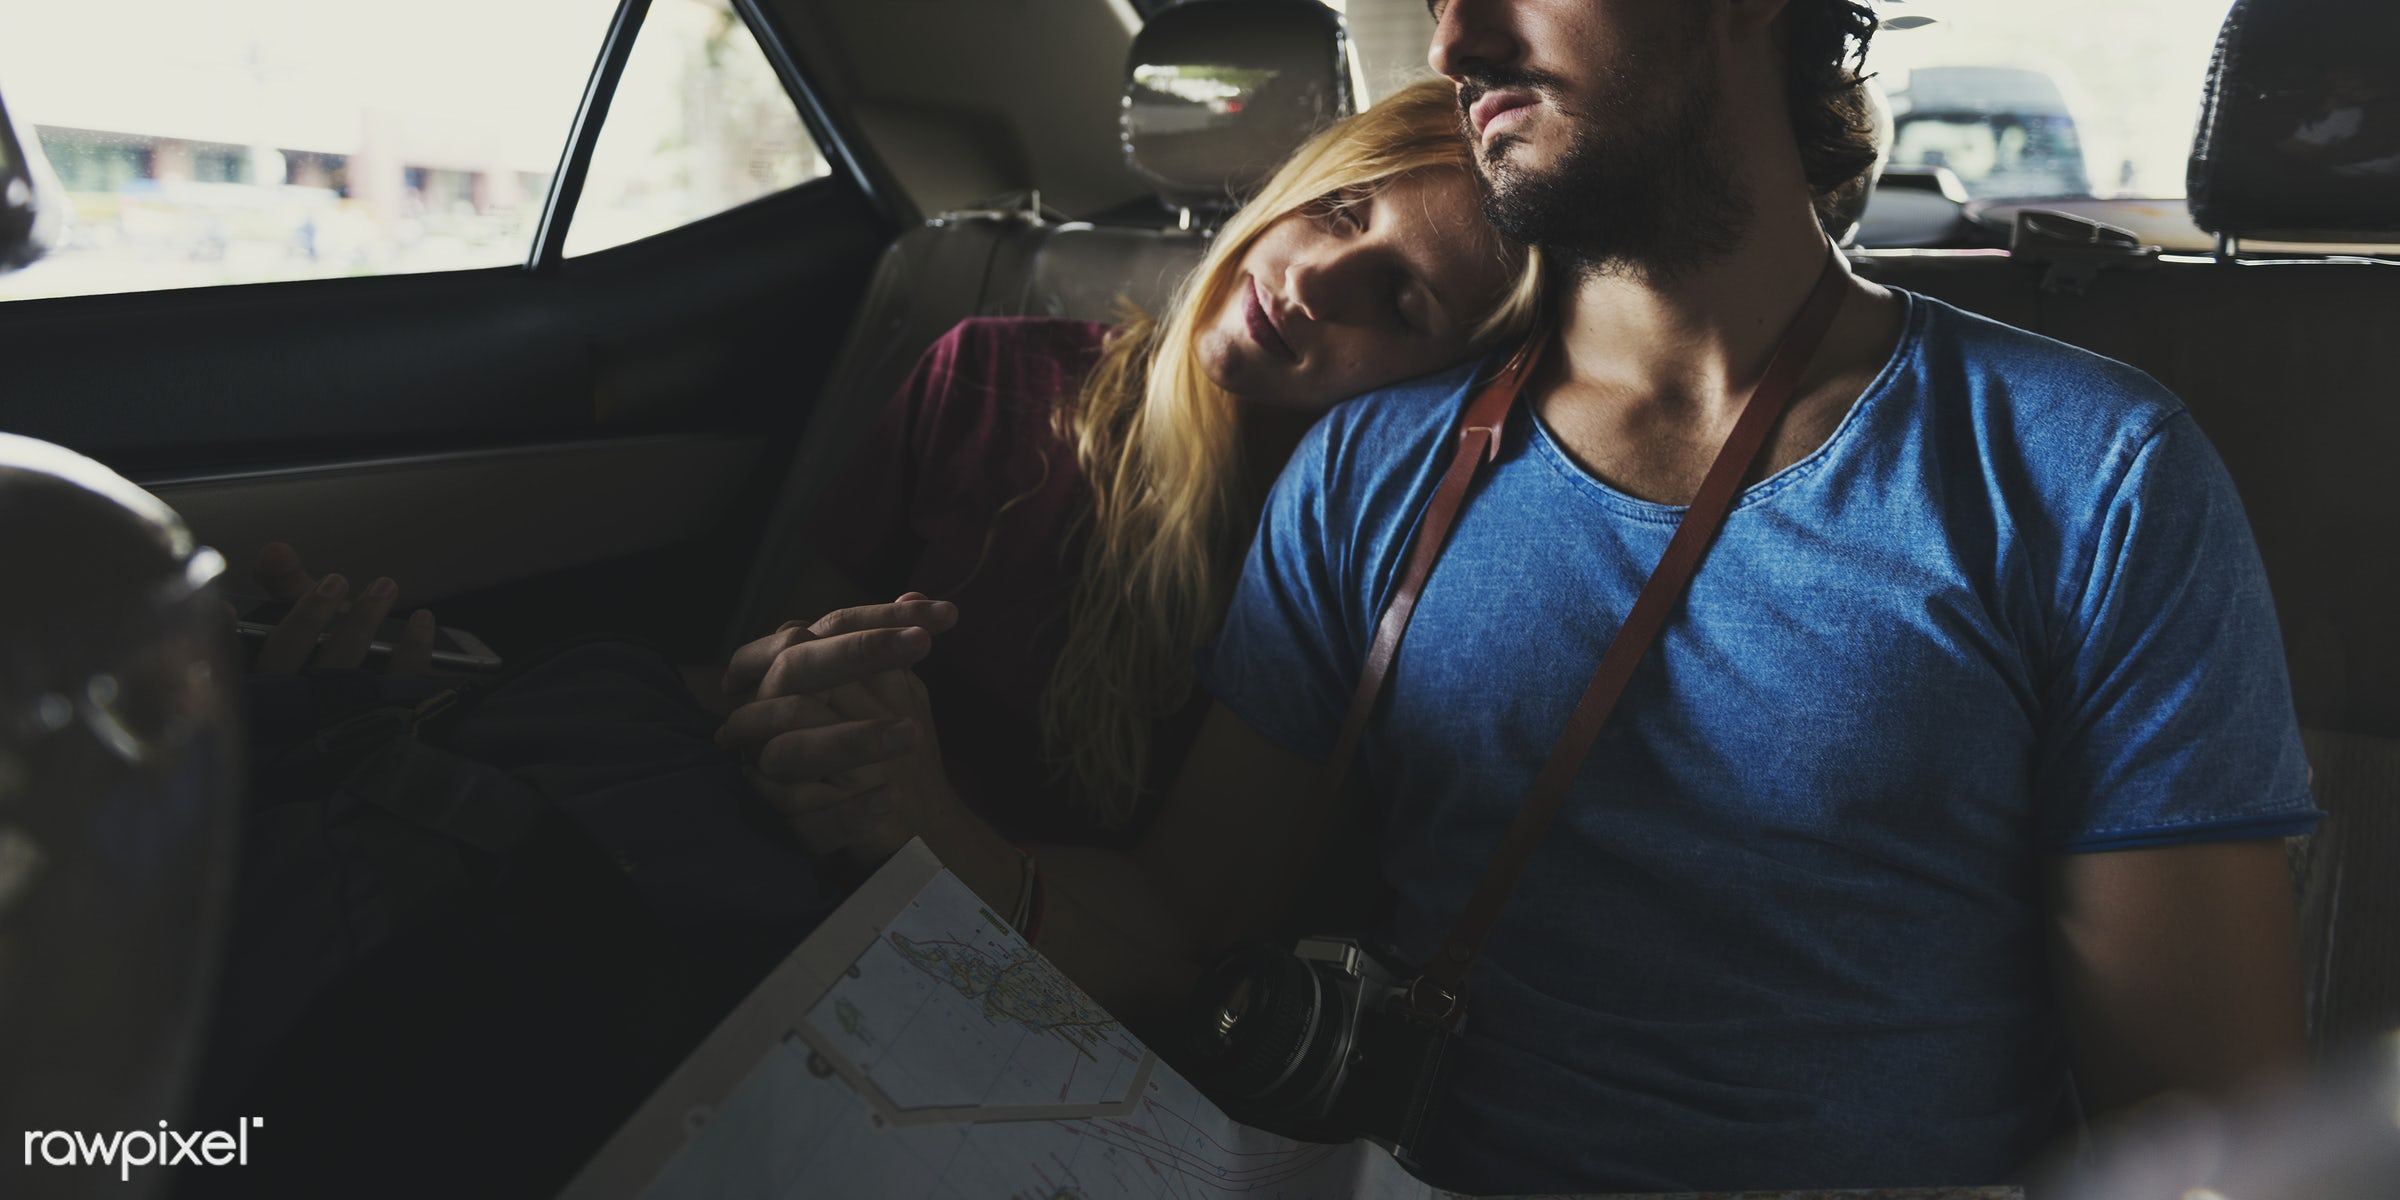 Couple riding a cab on their way to their destination - taxi, trip, adult, automobile, backpackers, blonde, boyfriend, cab,...